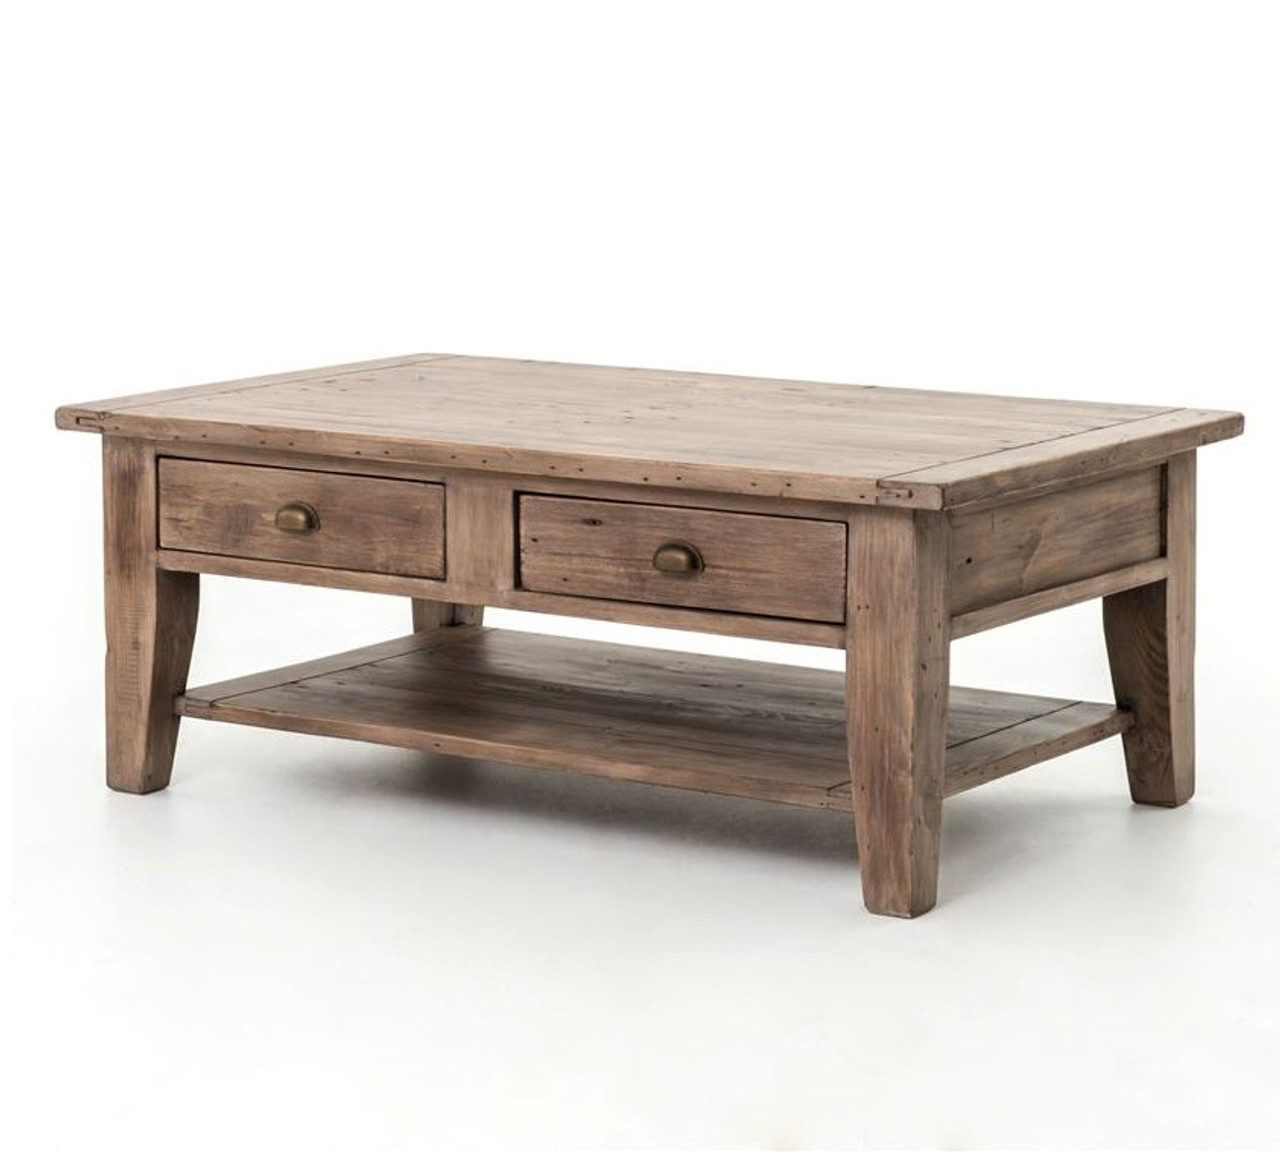 Charmant Coastal Solid Wood Coffee Table With Drawers